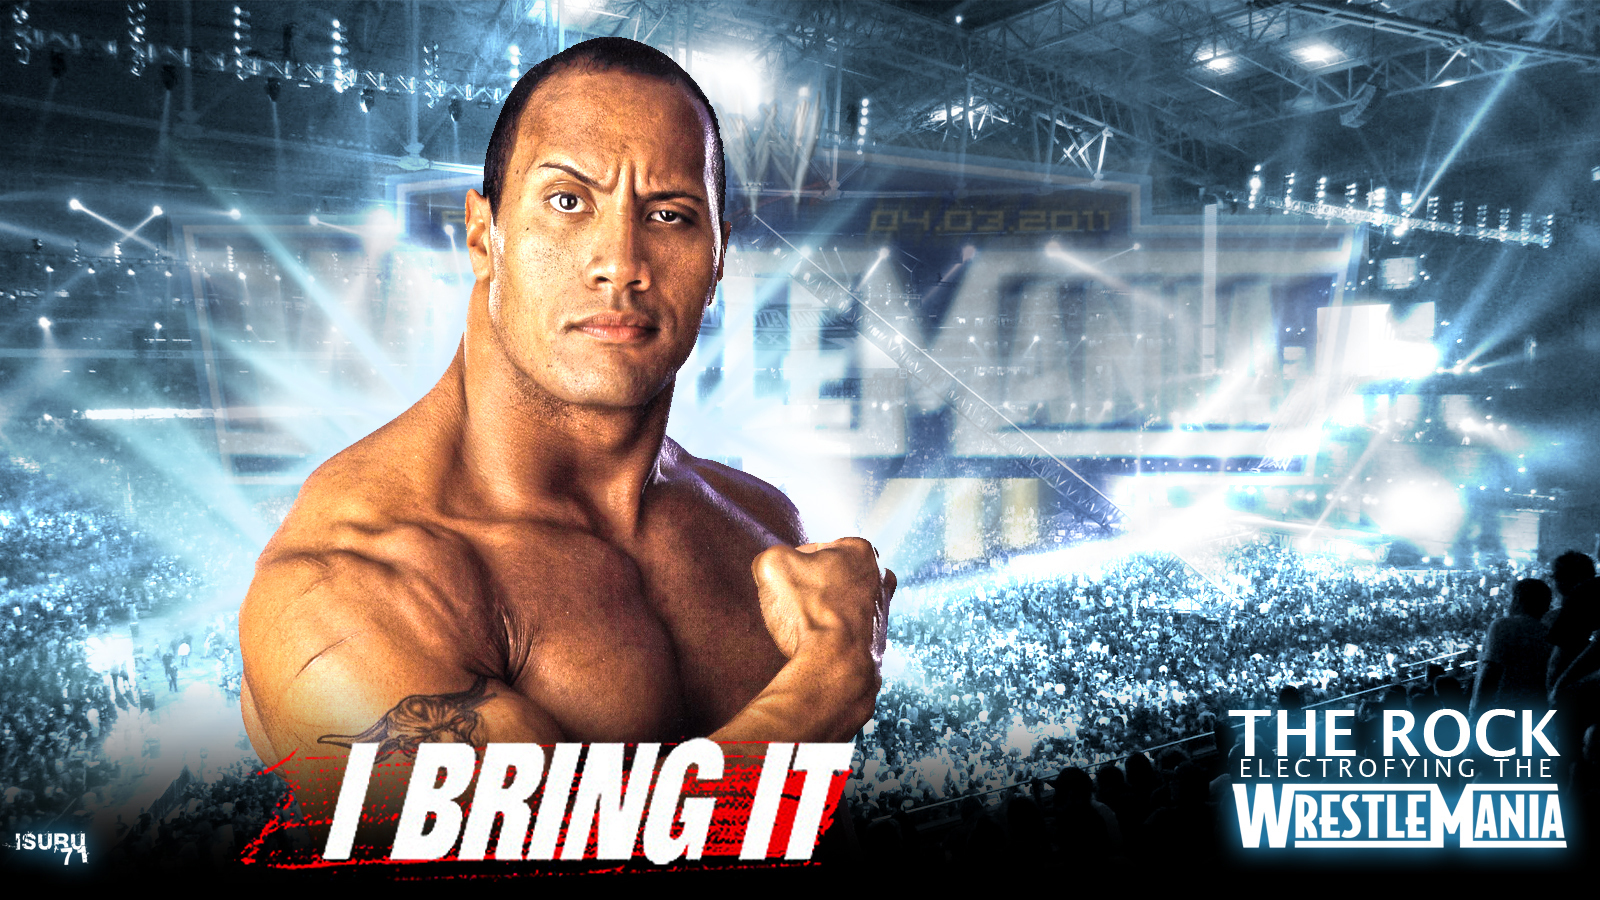 WWE image The Rock HD wallpapers and backgrounds photos